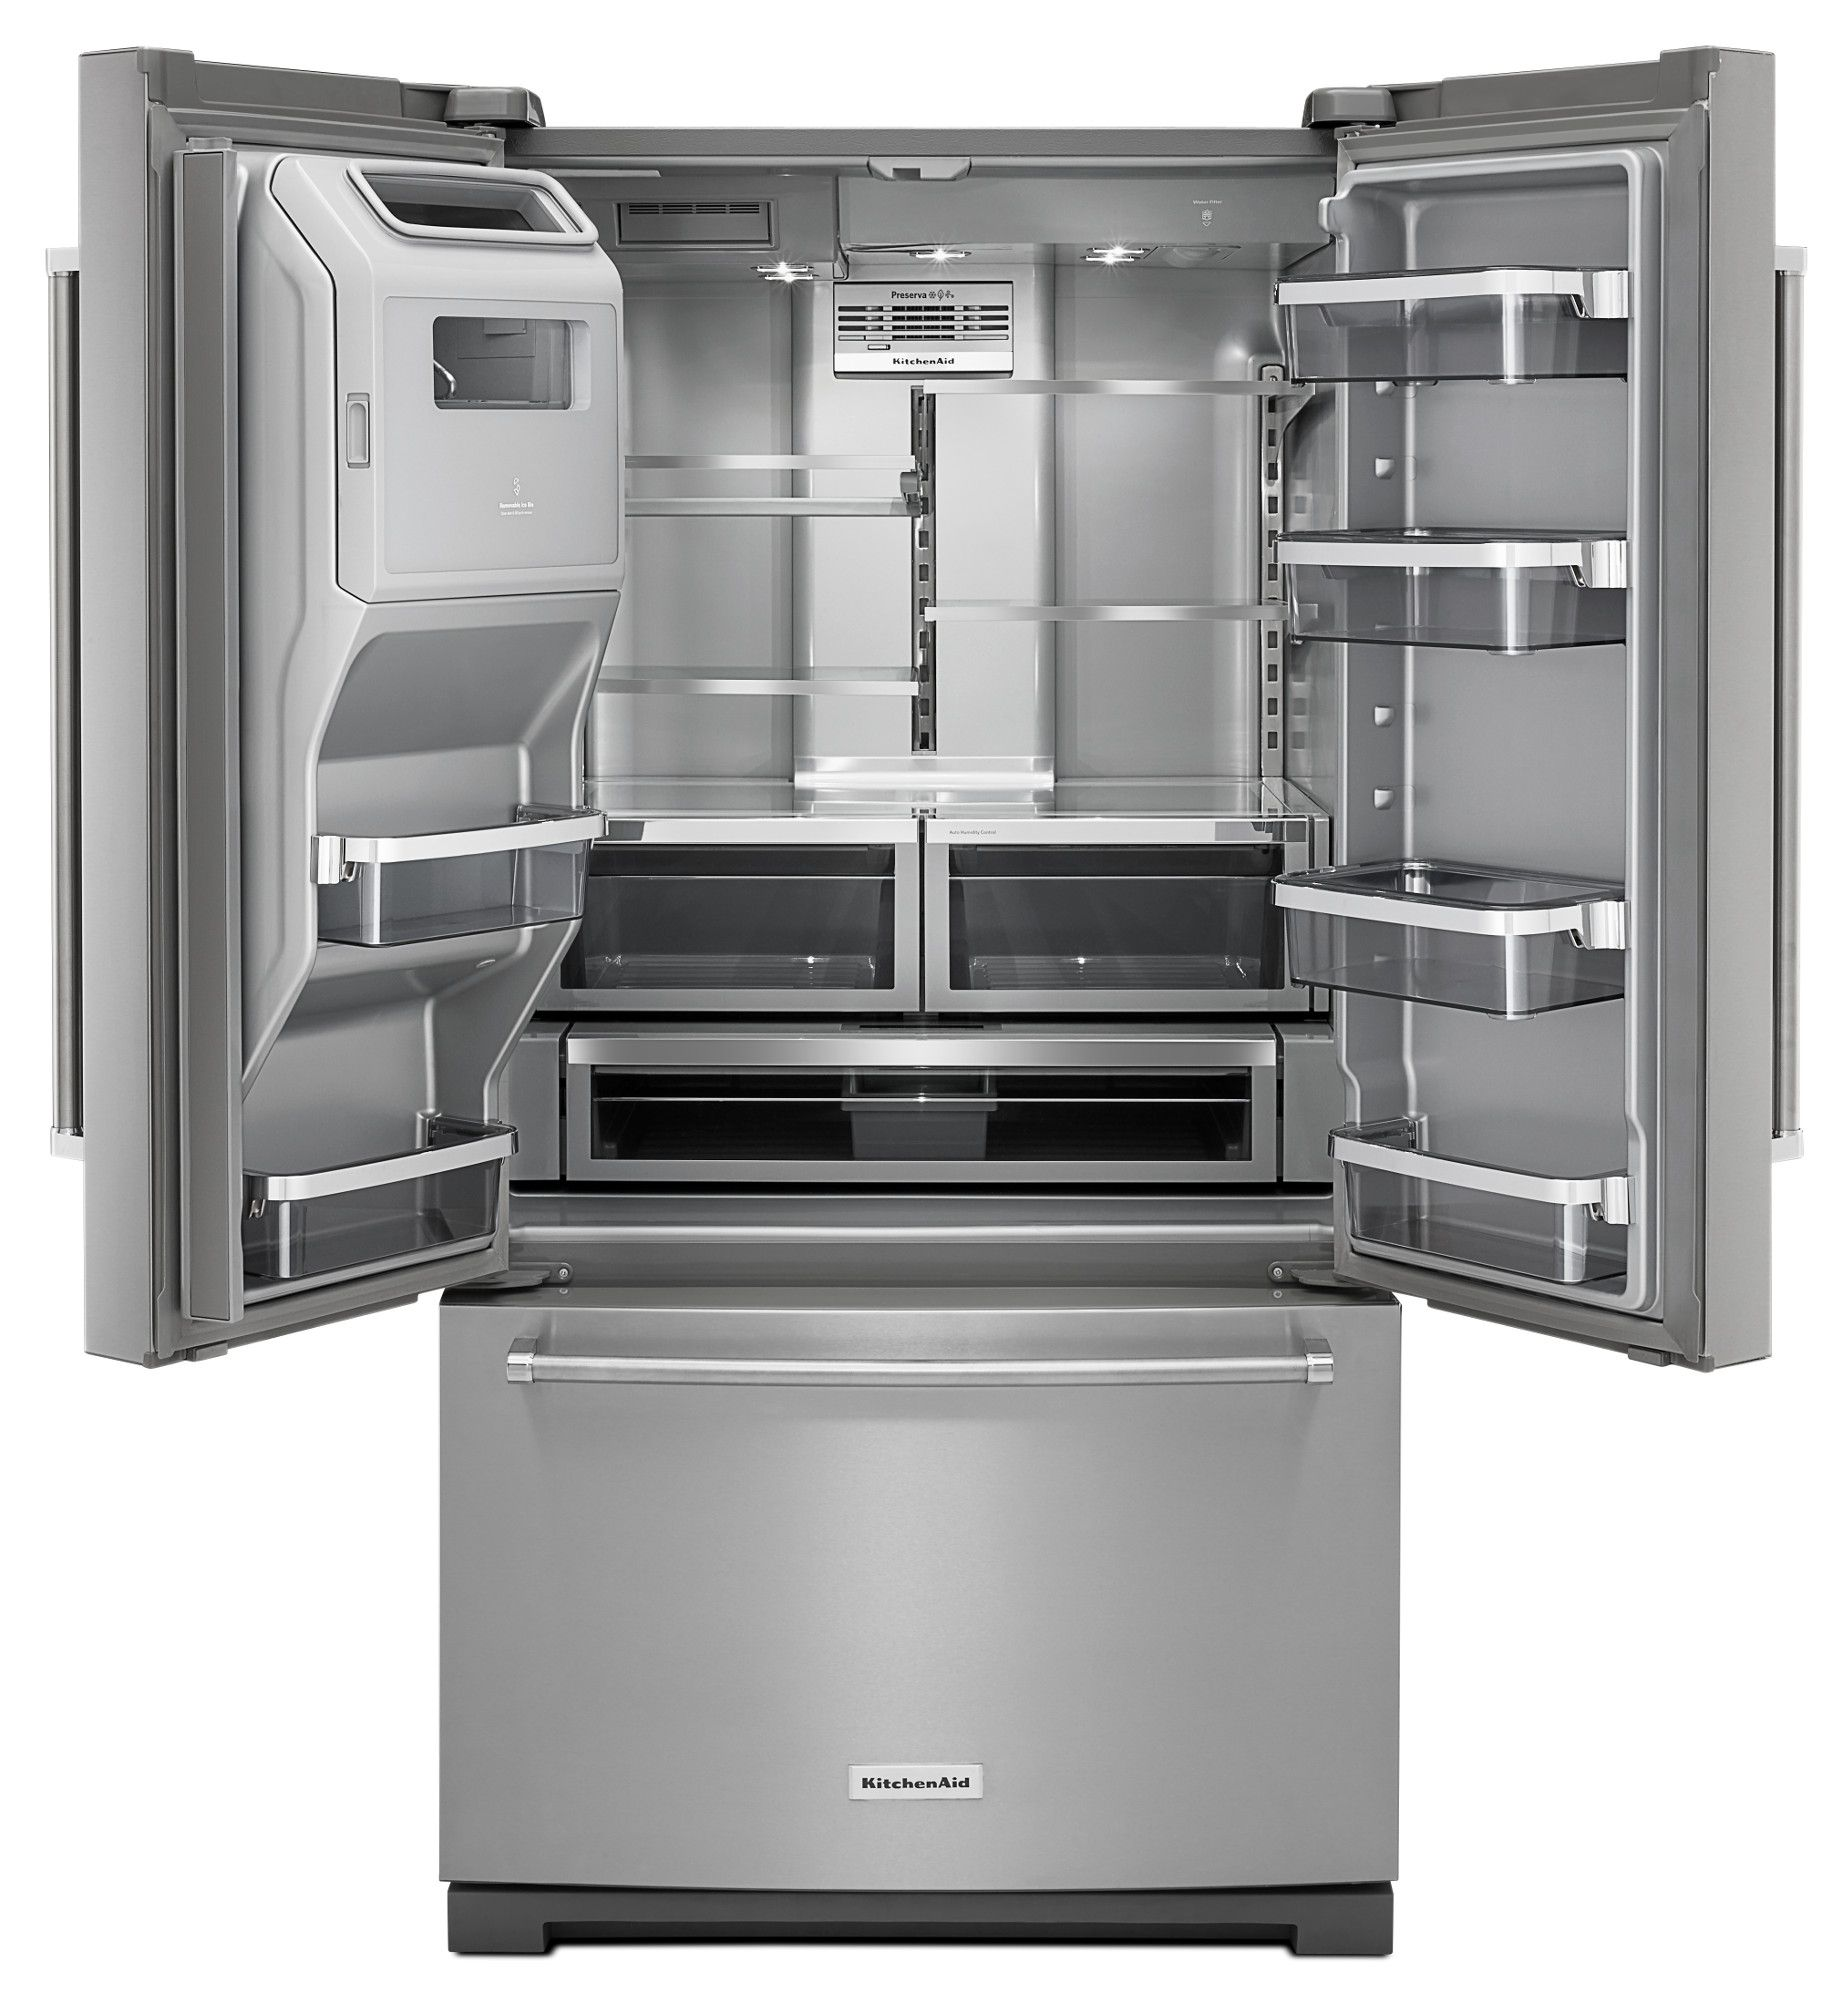 kitchenaid appliances sears kitchenaid krff707ess 268 cu ft french door refrigerator stainless steel sears outlet